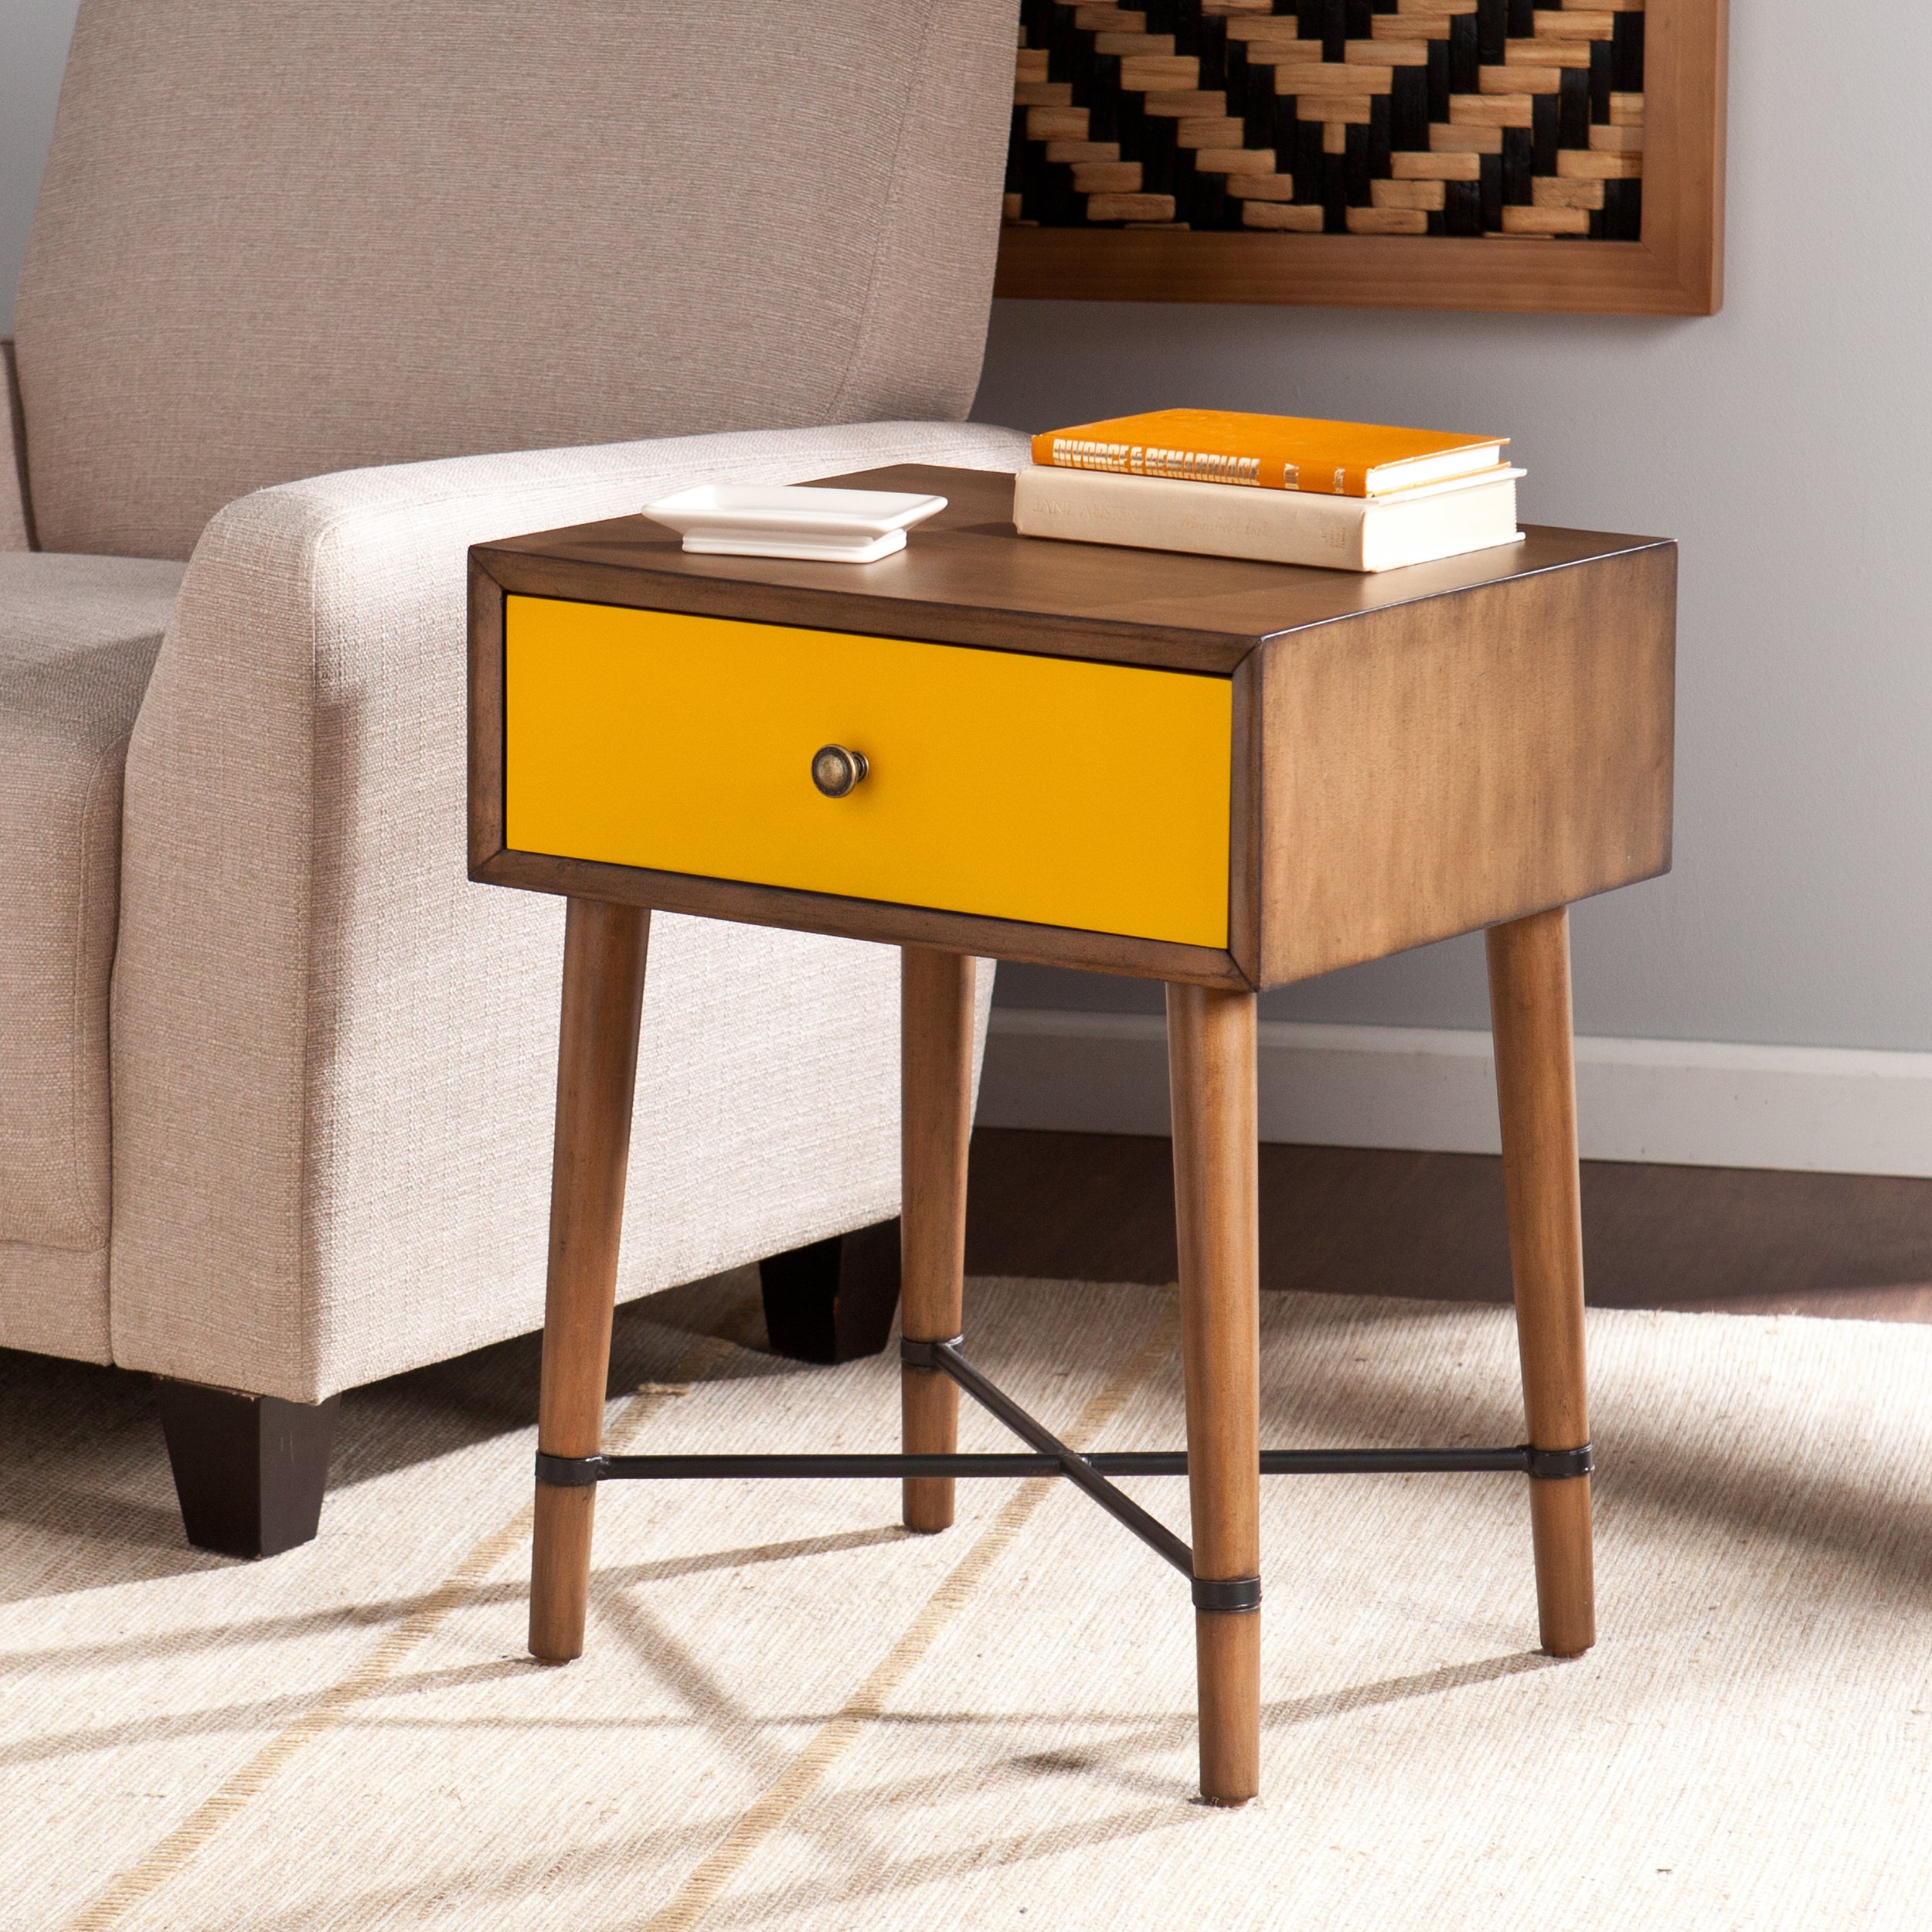 harper blvd niles yellow accent table free shipping today inch legs bunnings outdoor settings round end halloween tablecloth live edge wood diy ideas patio furniture for small